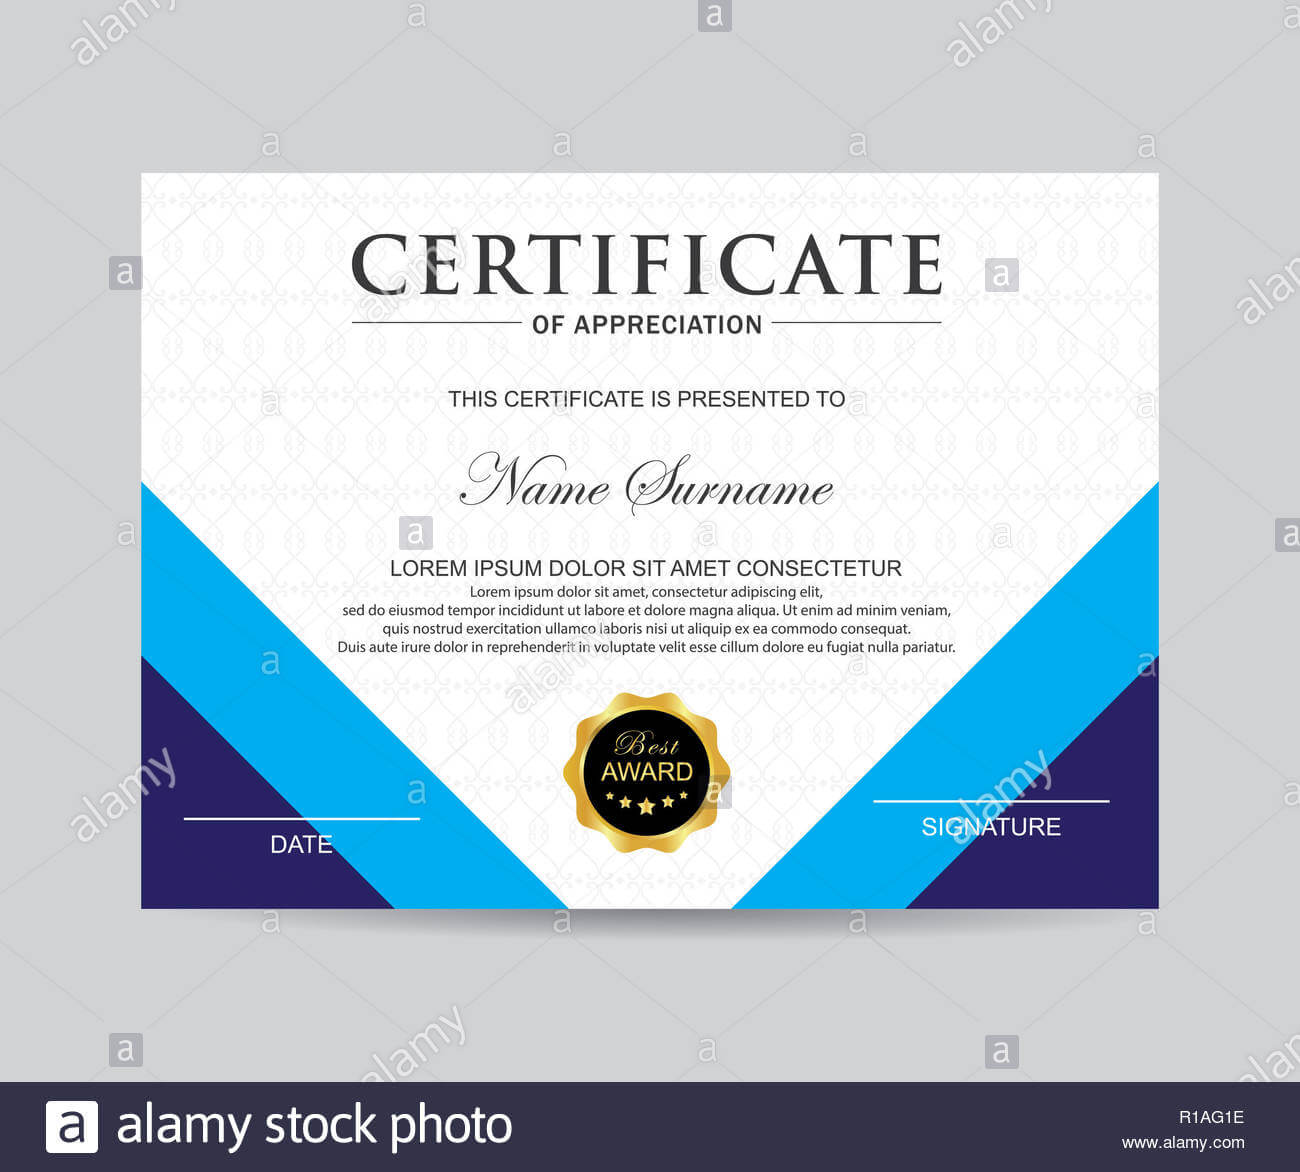 Modern Certificate Template And Background Stock Photo With Regard To Borderless Certificate Templates